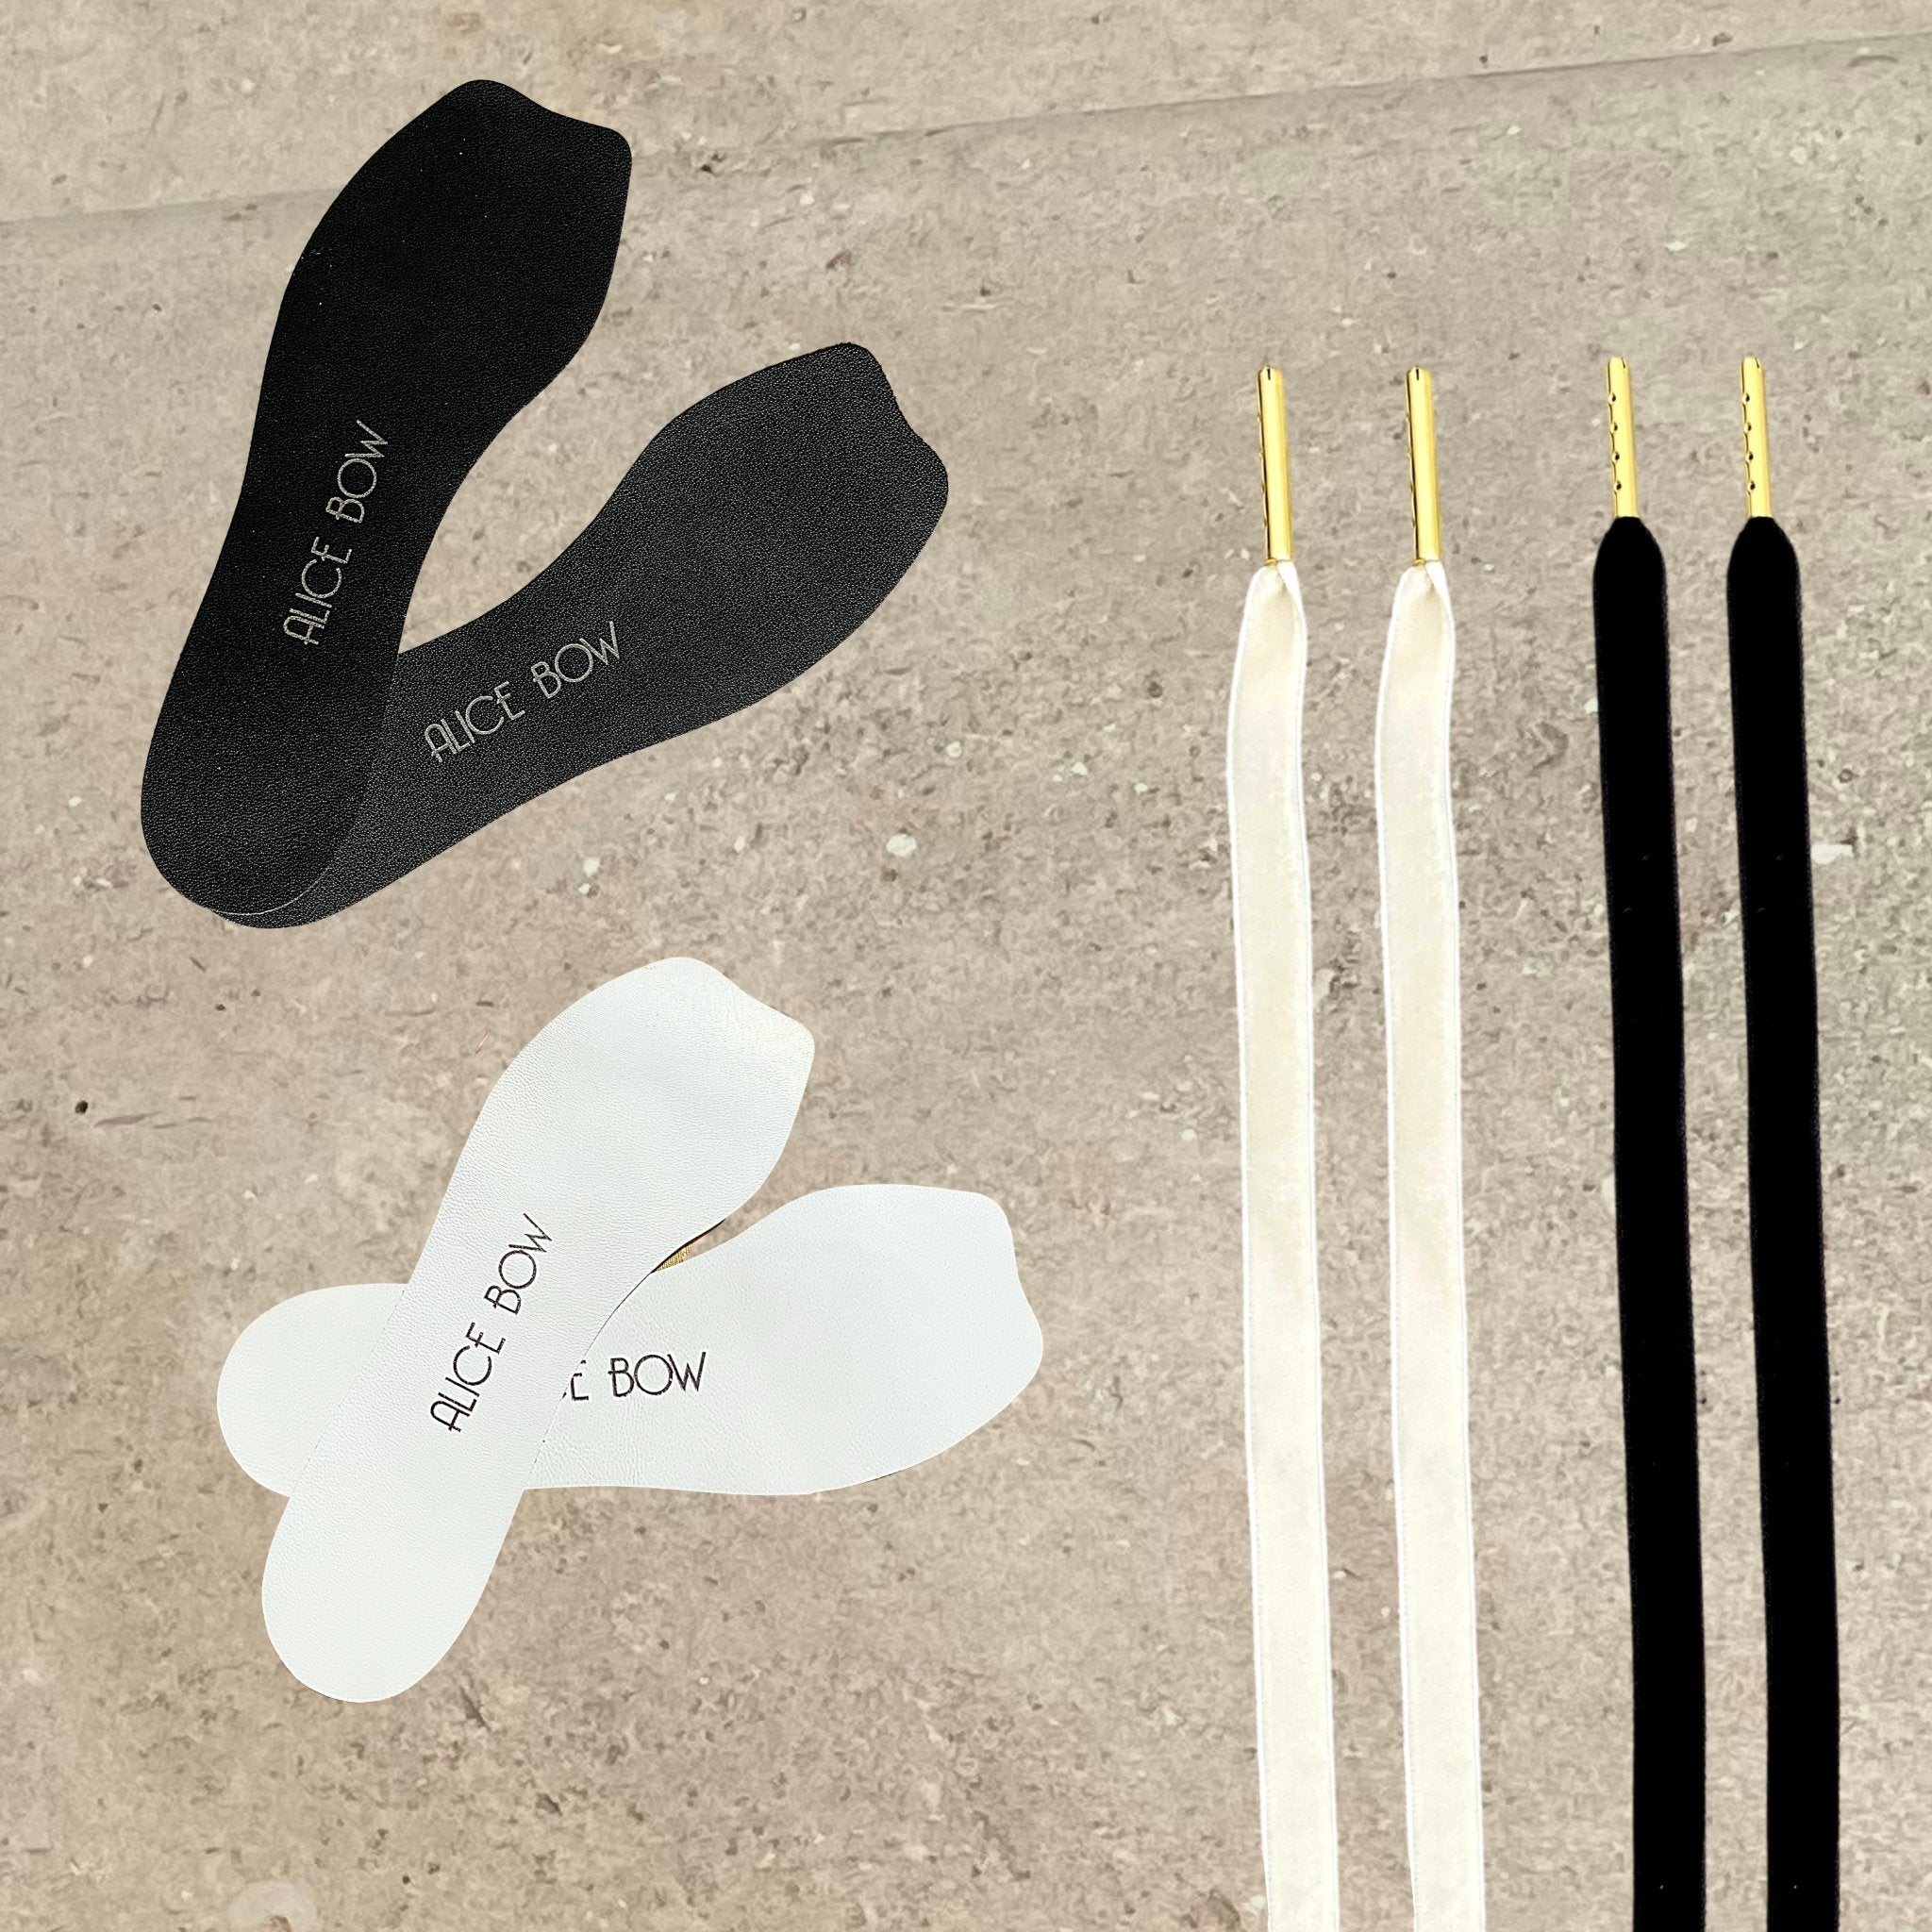 Signature Insole + Velvet Shoelaces Pack - Midnight Black & Soft White - Alice Bow